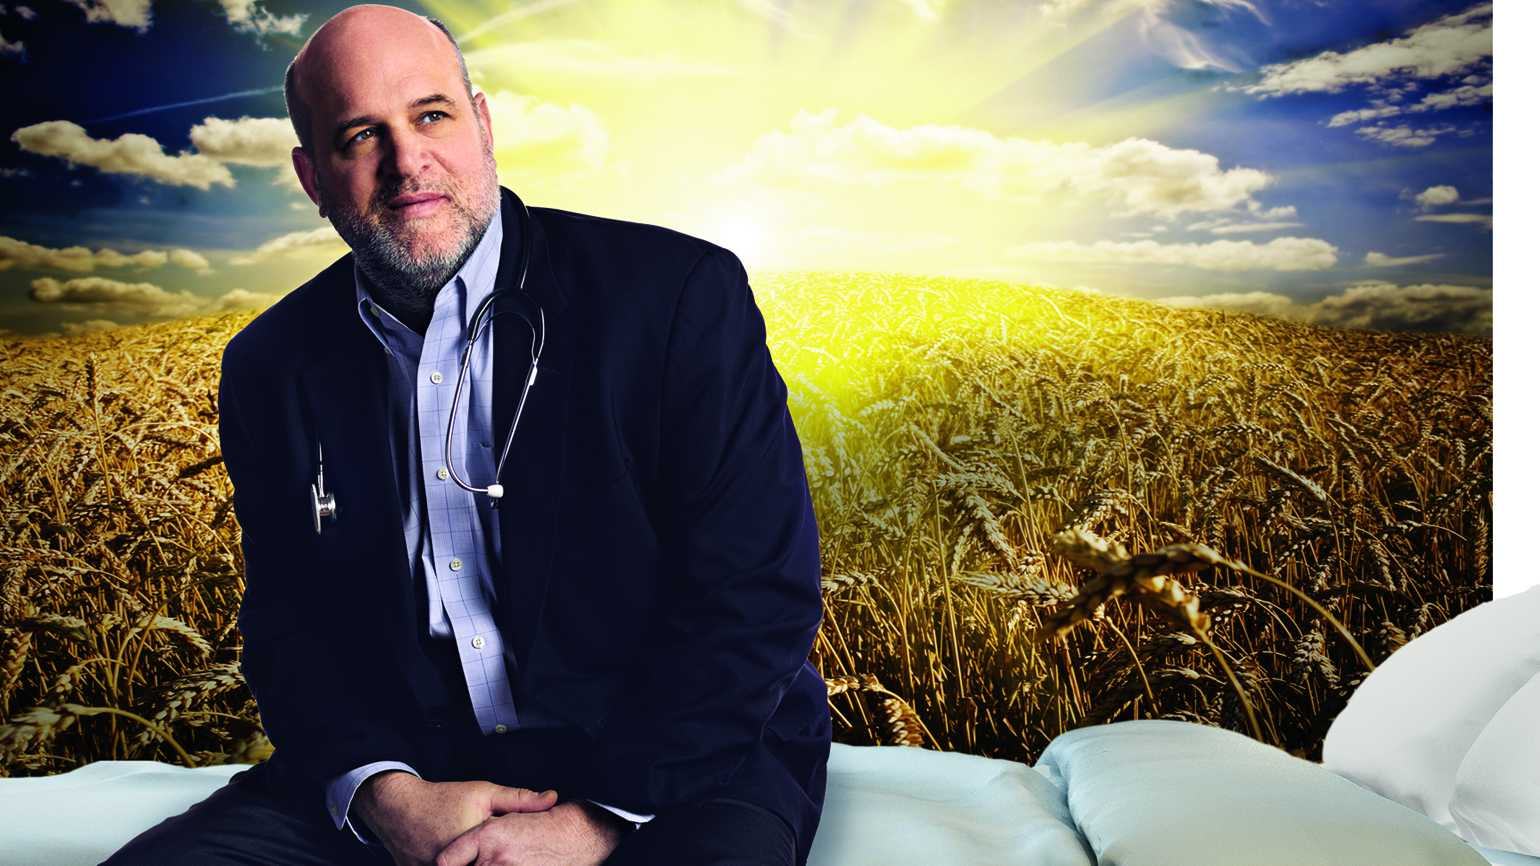 Dr. Christopher Kerr sitting on a bed in front of a brilliant sunrise on wheat plains.